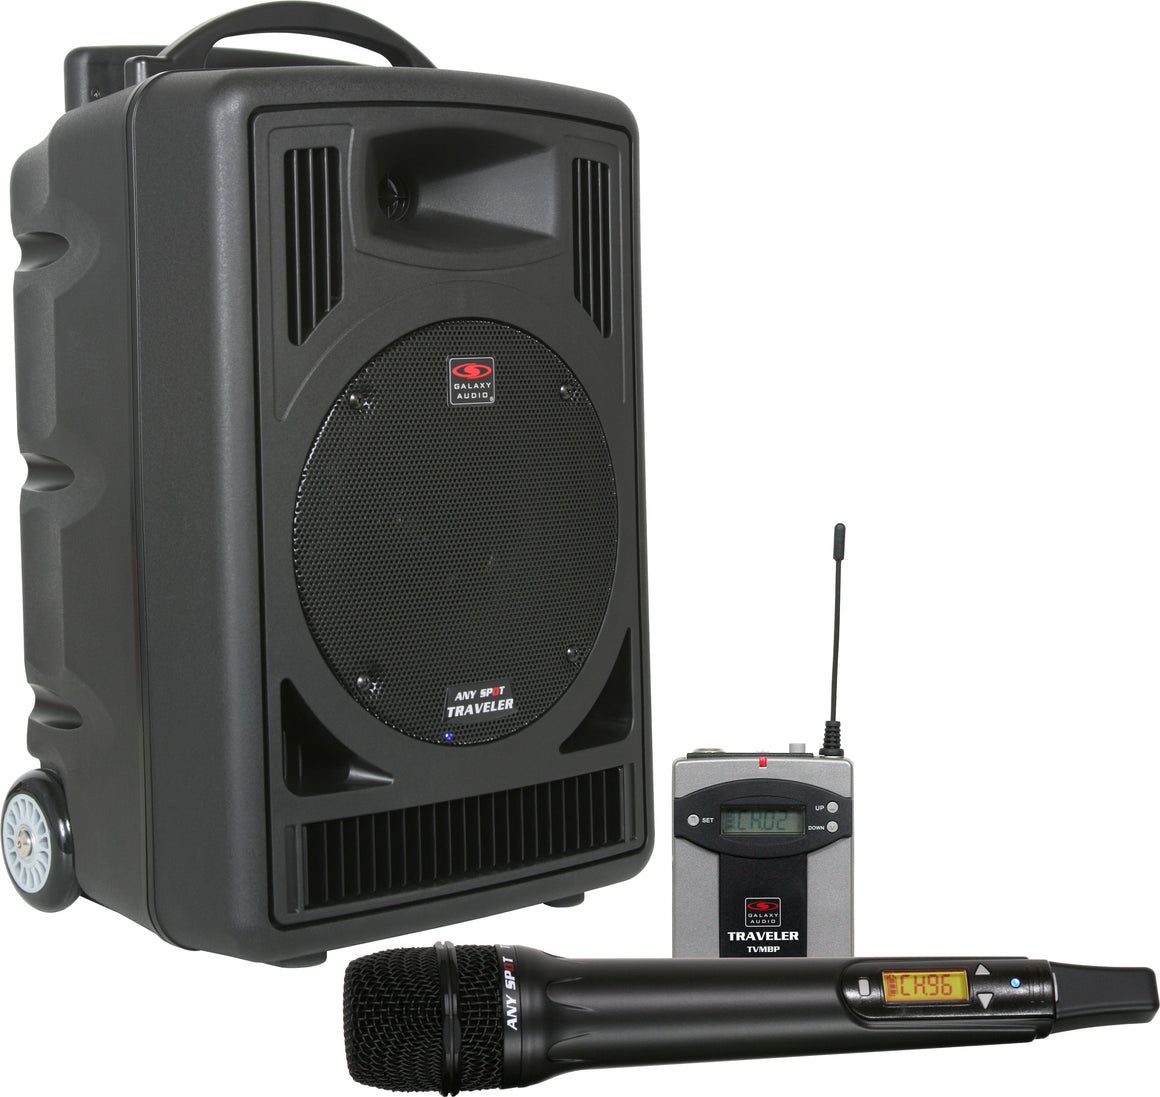 Galaxy Audio Traveler Portable PA System - TV8